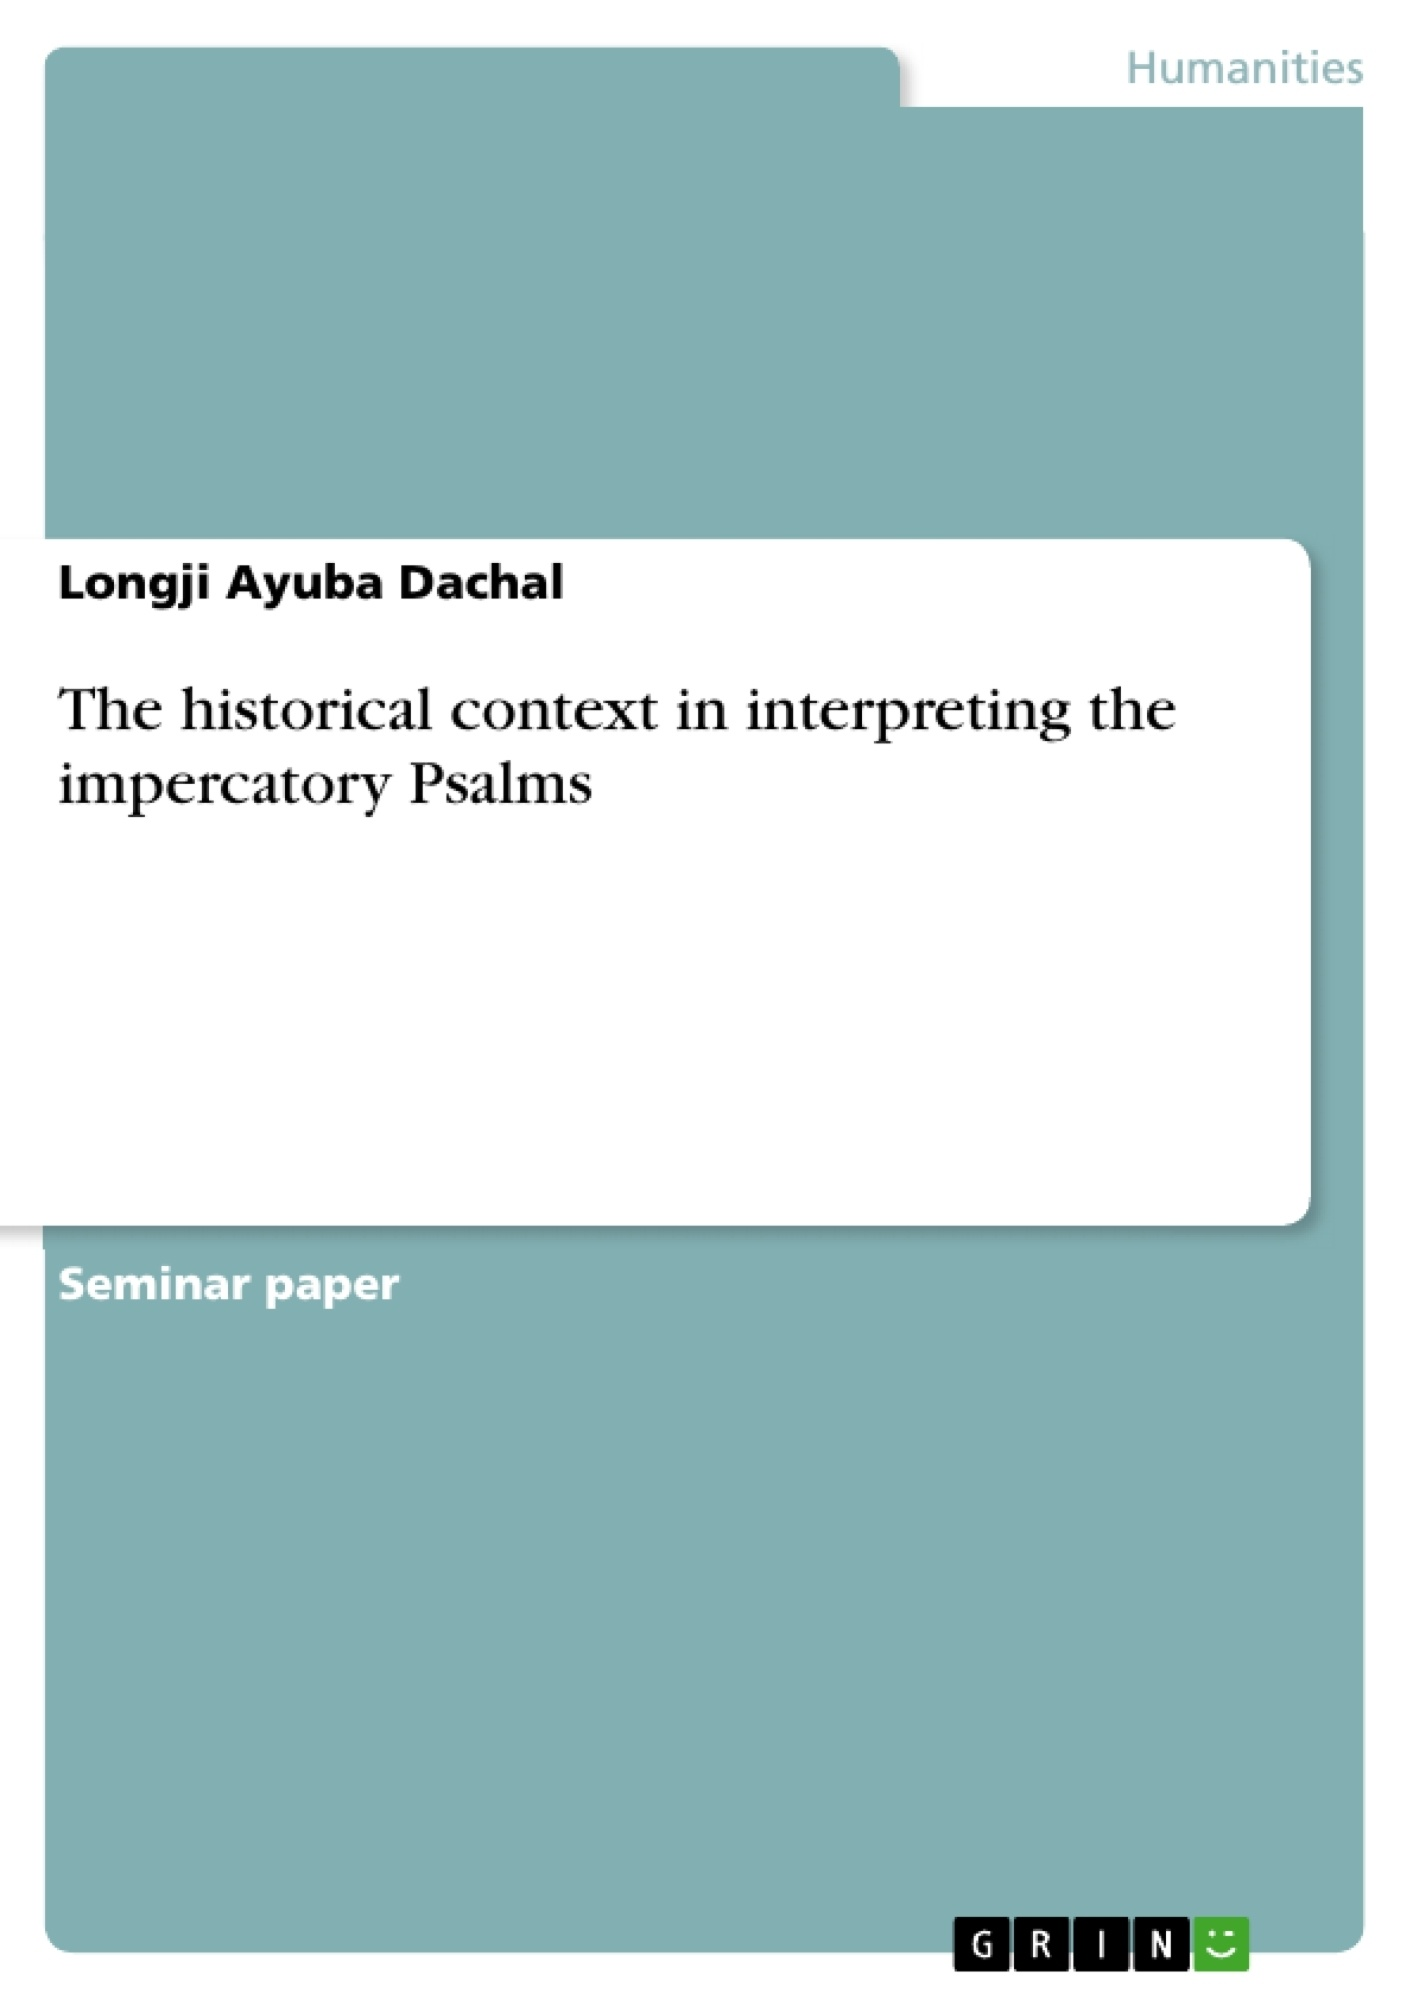 Title: The historical context in interpreting the impercatory Psalms